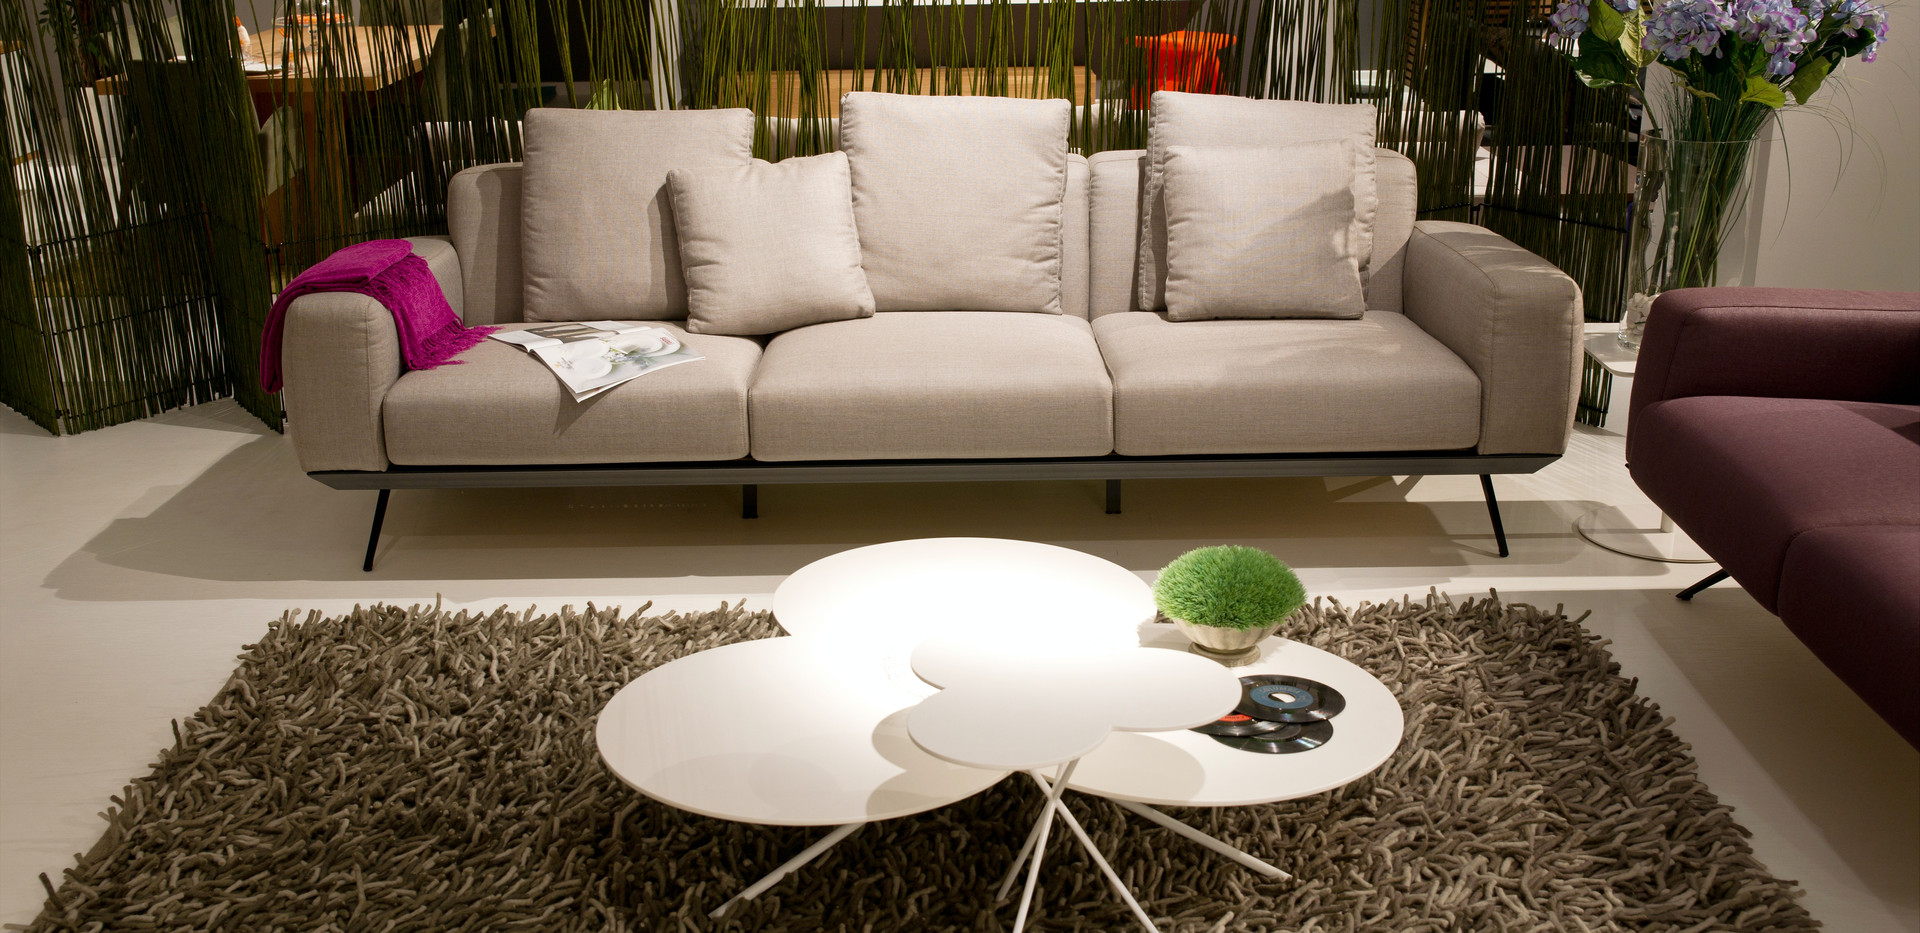 white-sofa-near-white-round-table-417003